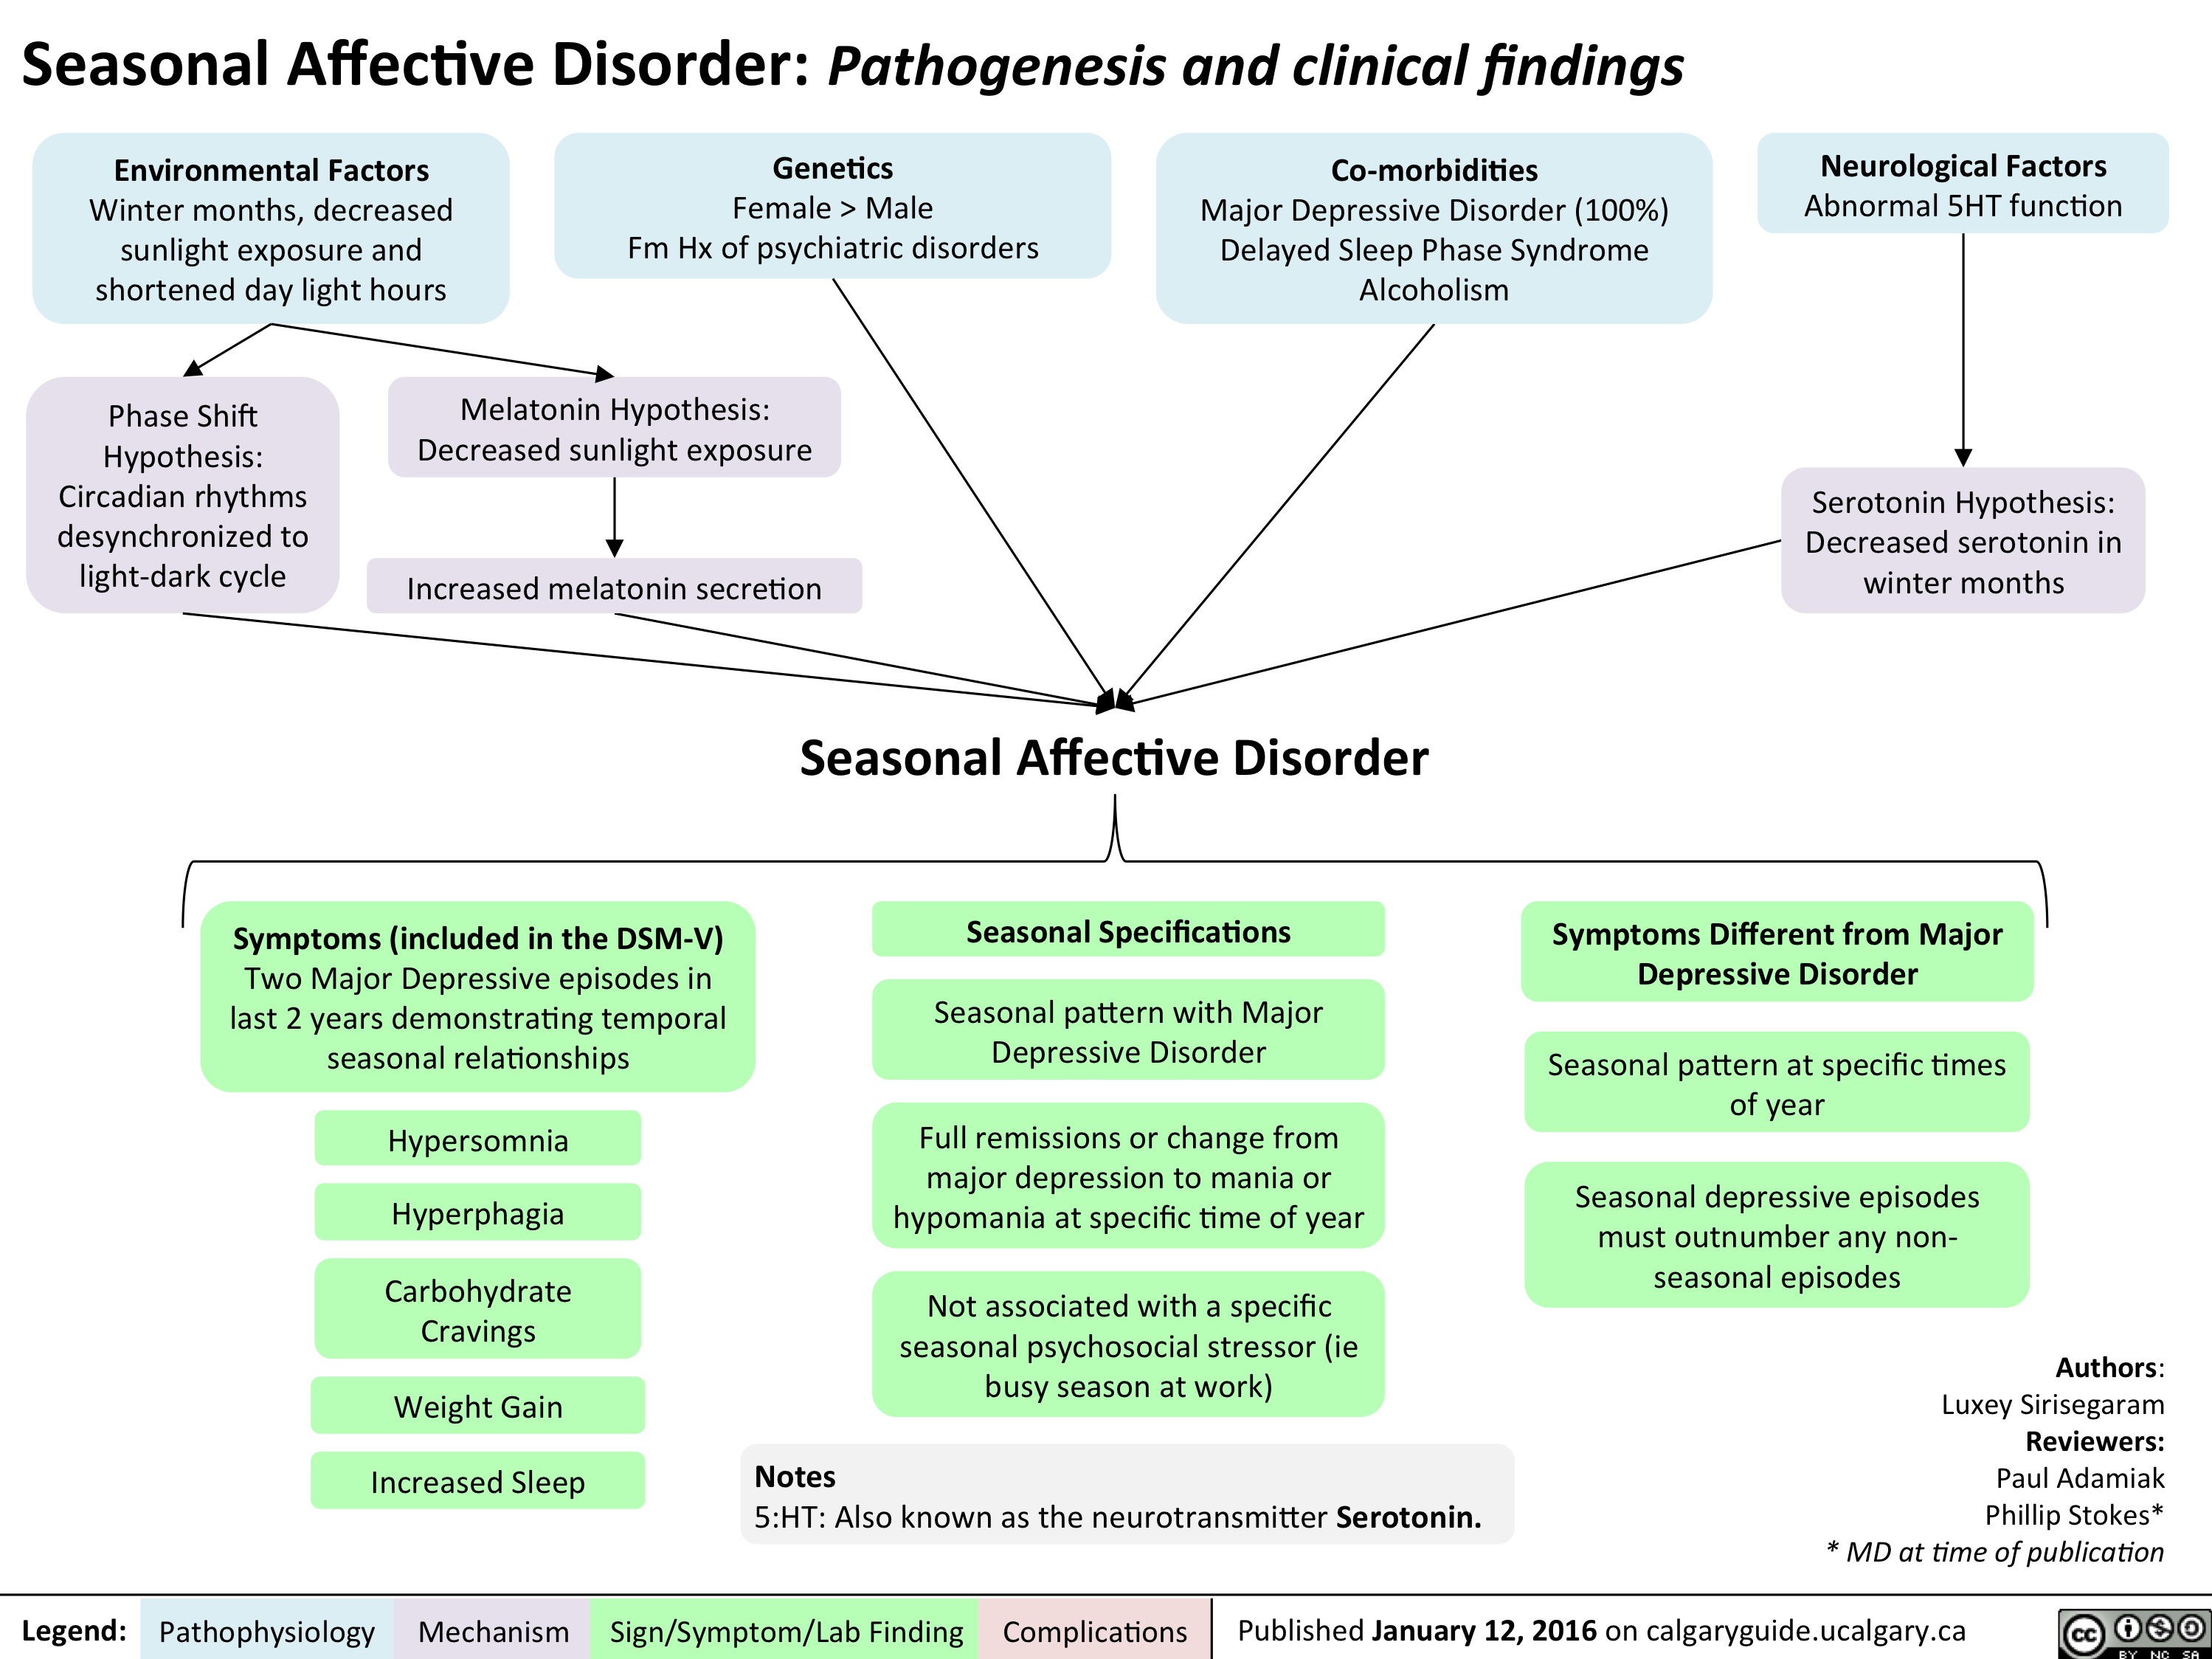 Seasonal Affective Disorder - Pathogenesis and clinical findings v2